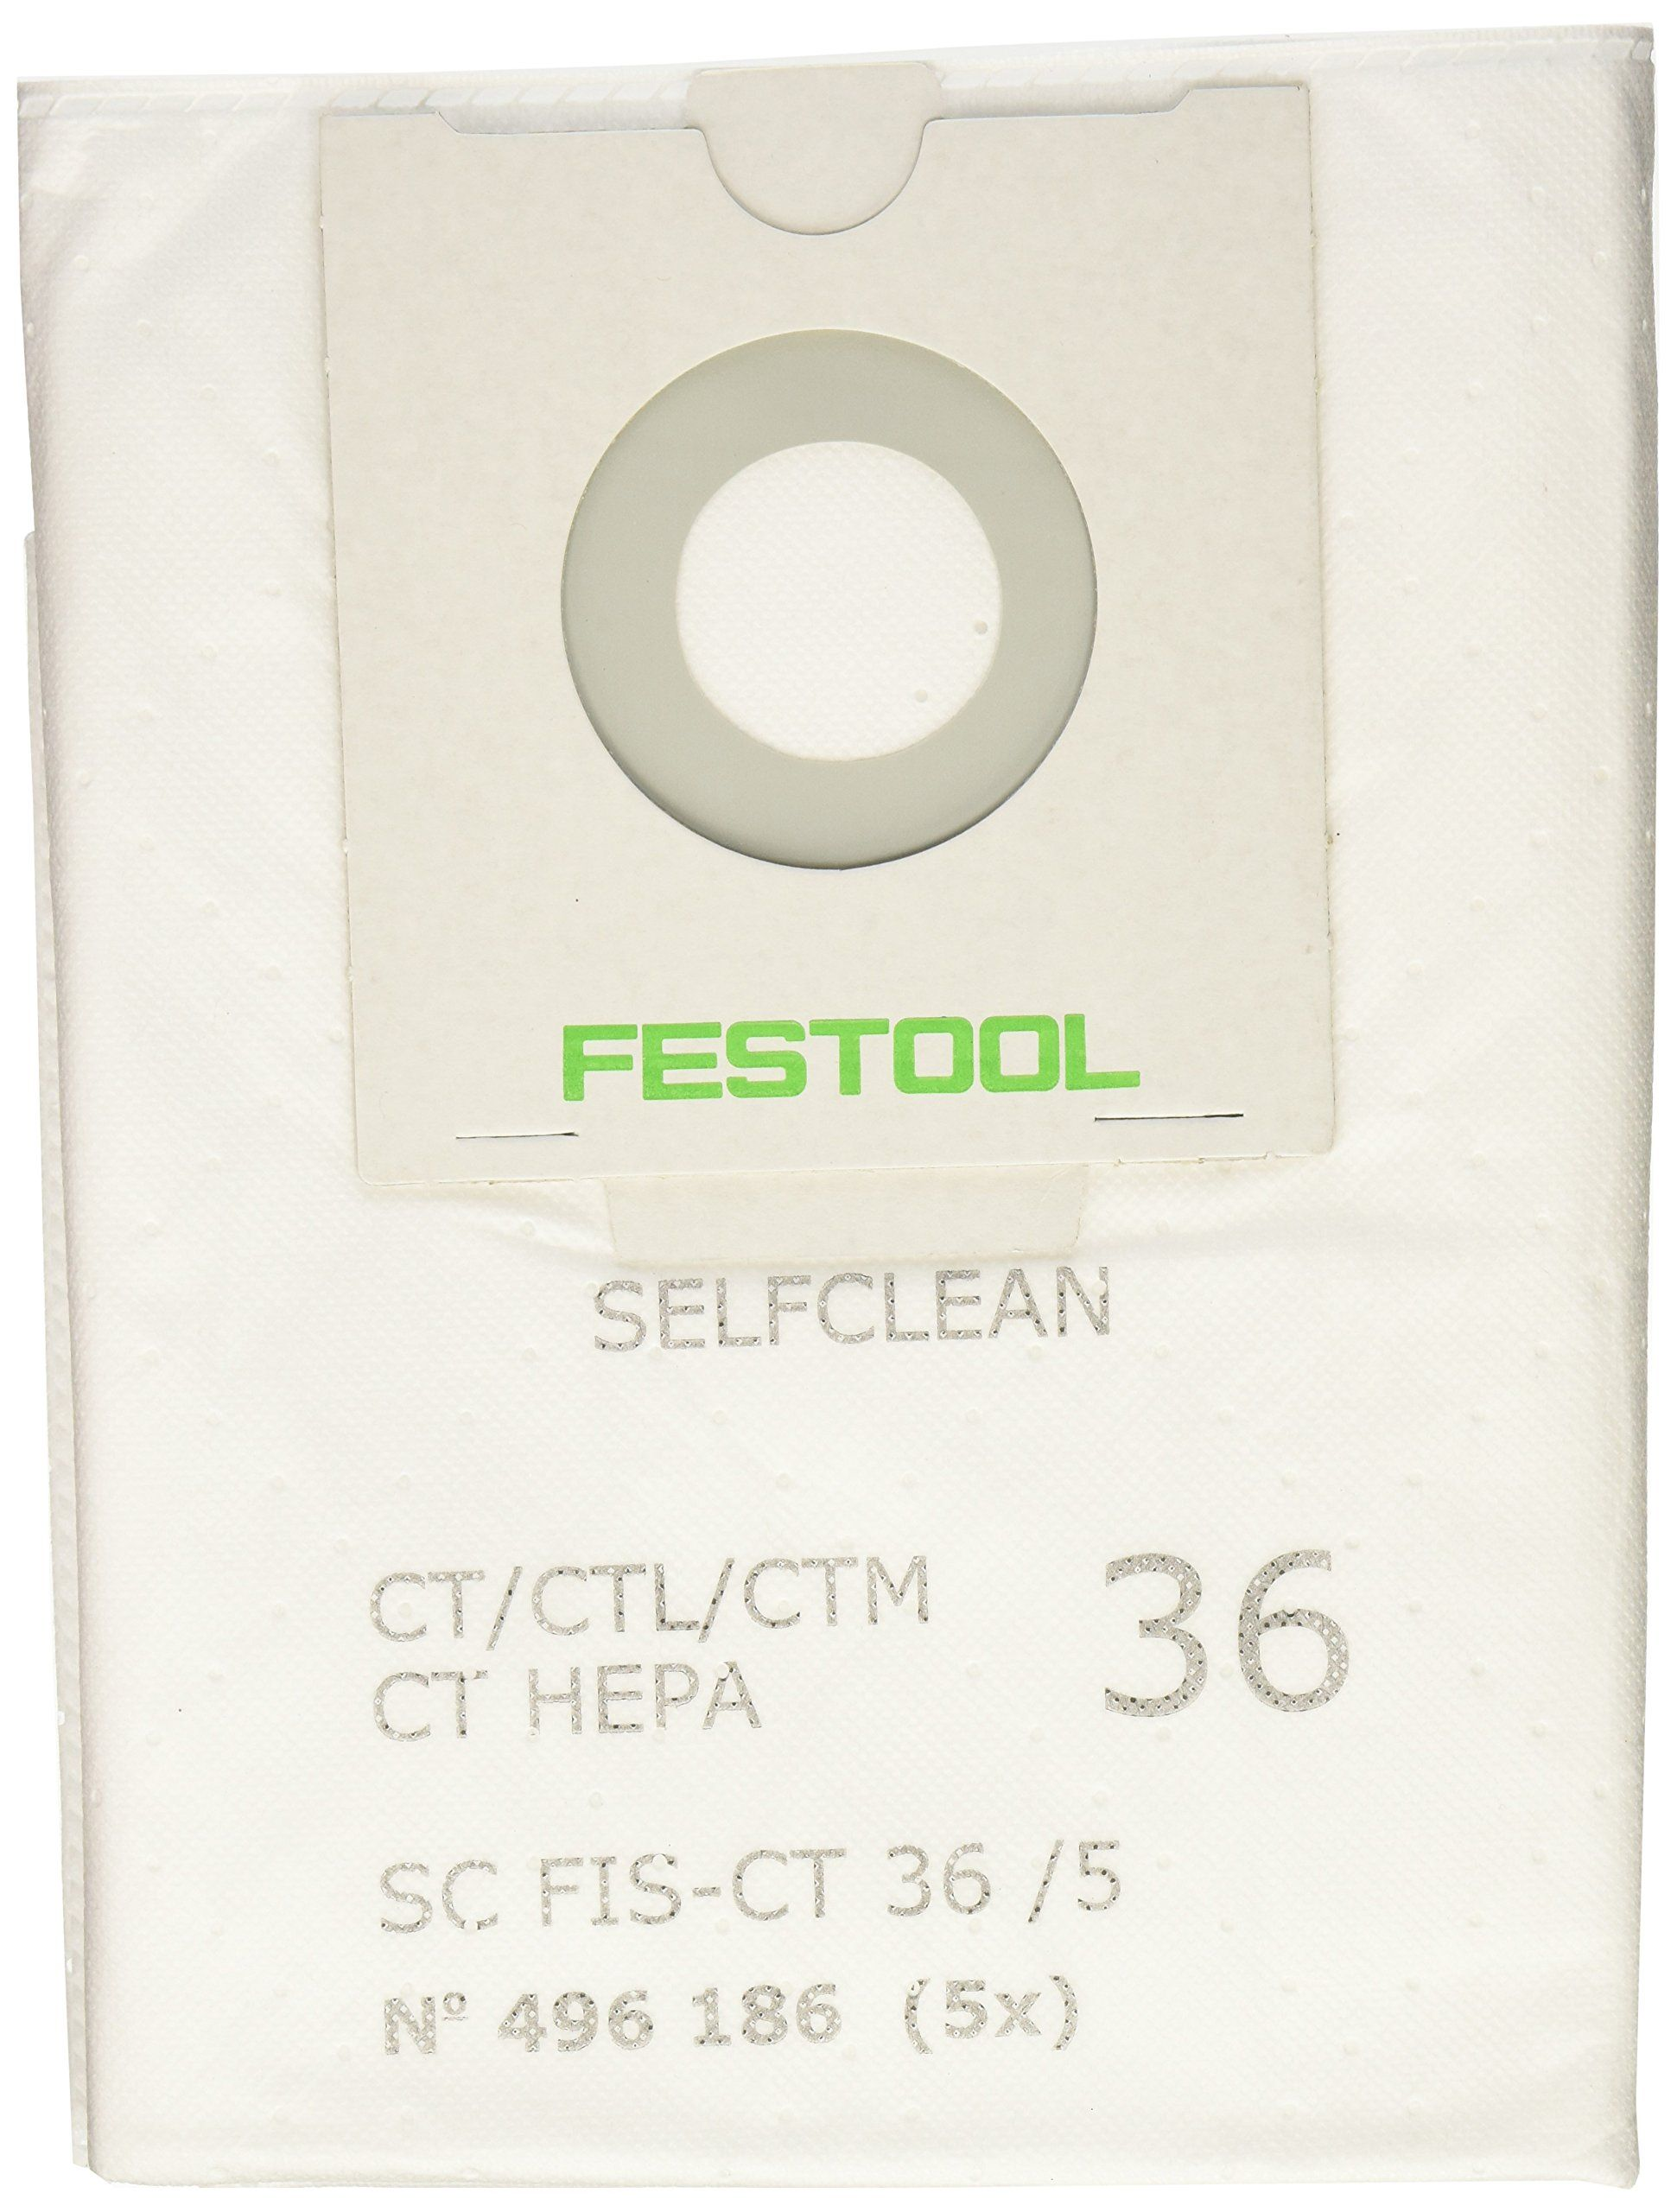 Festool 496186 SELFCLEAN Filter Bag for CT 36 Quantity 5